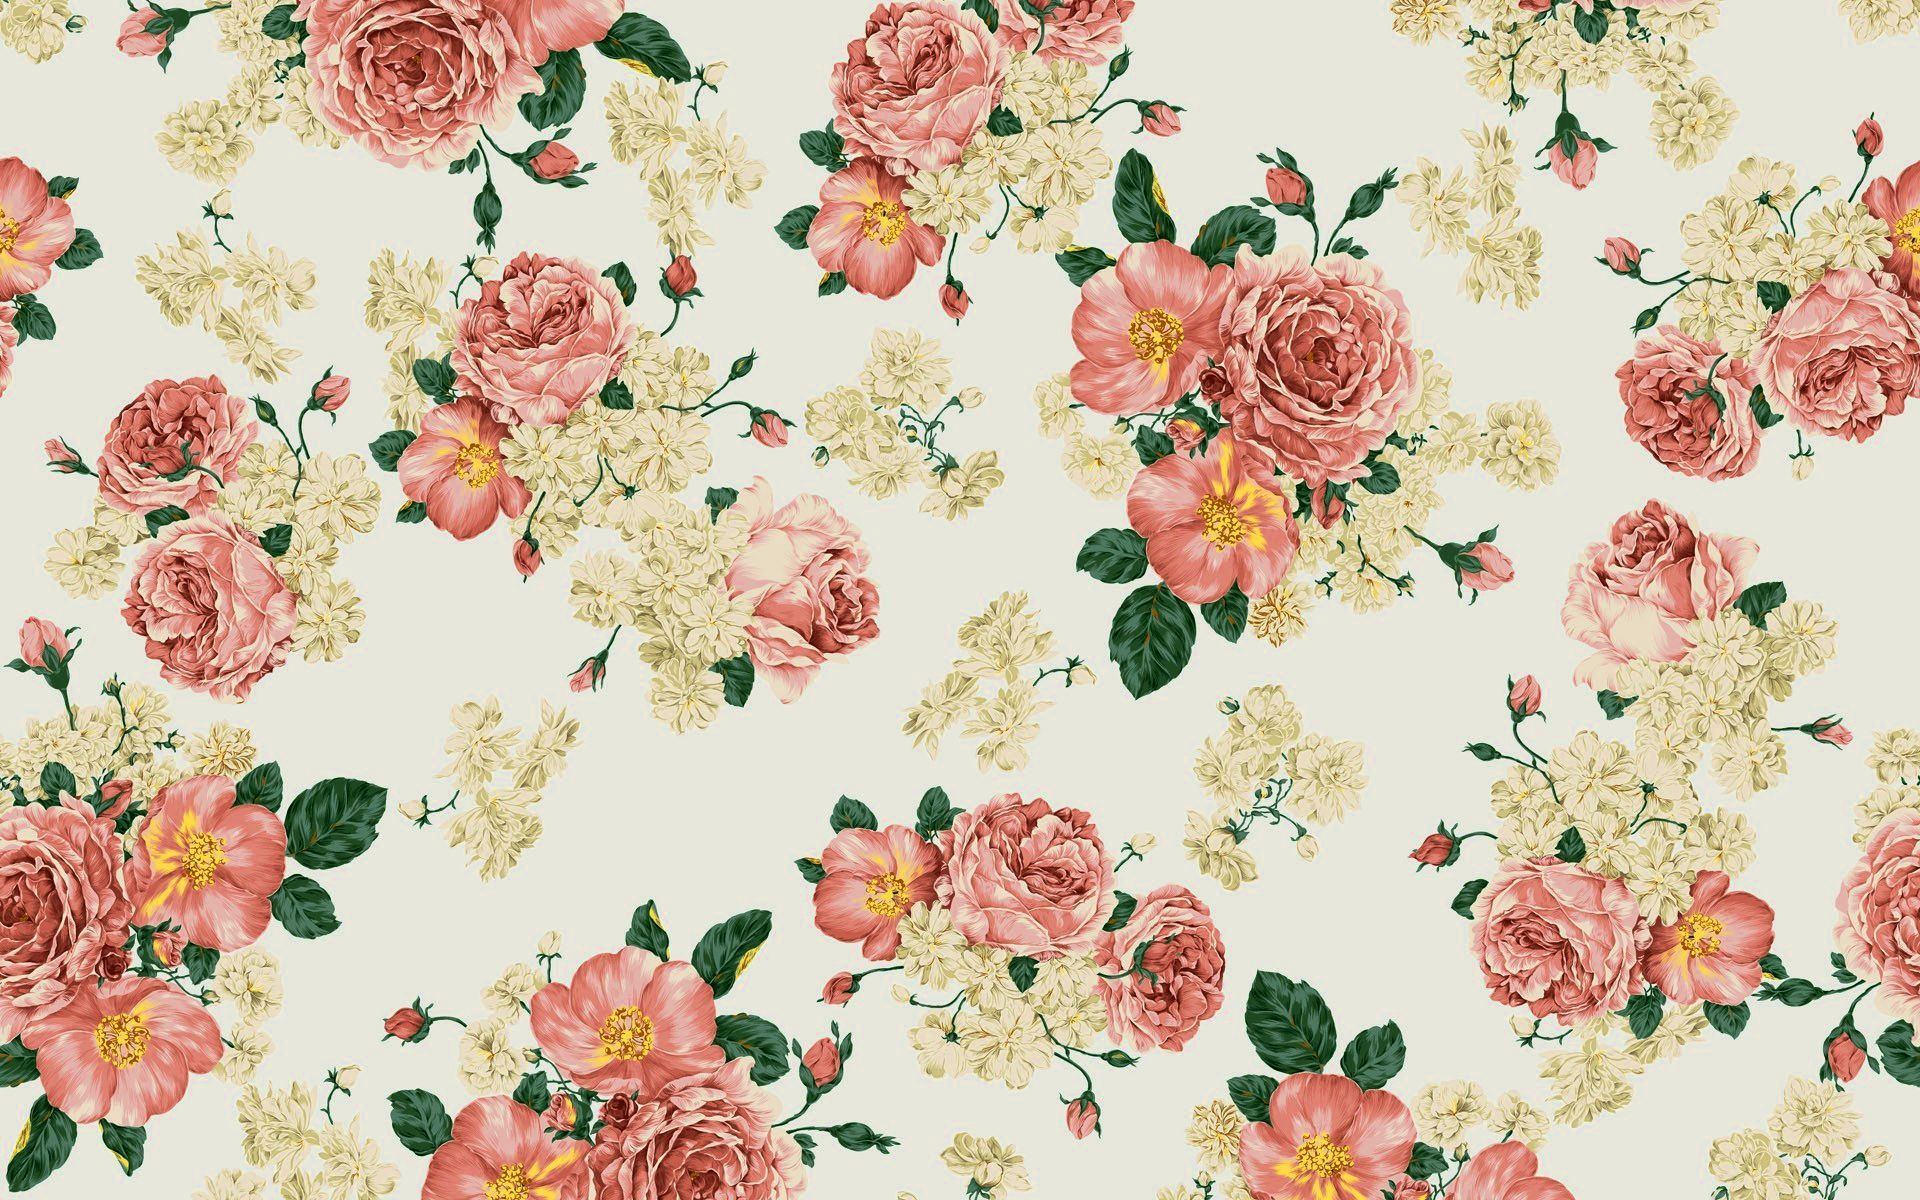 Floral Vintage Wallpaper Tumblr Vintage Flowers Wallpaper Vintage Floral Backgrounds Vintage Flower Backgrounds